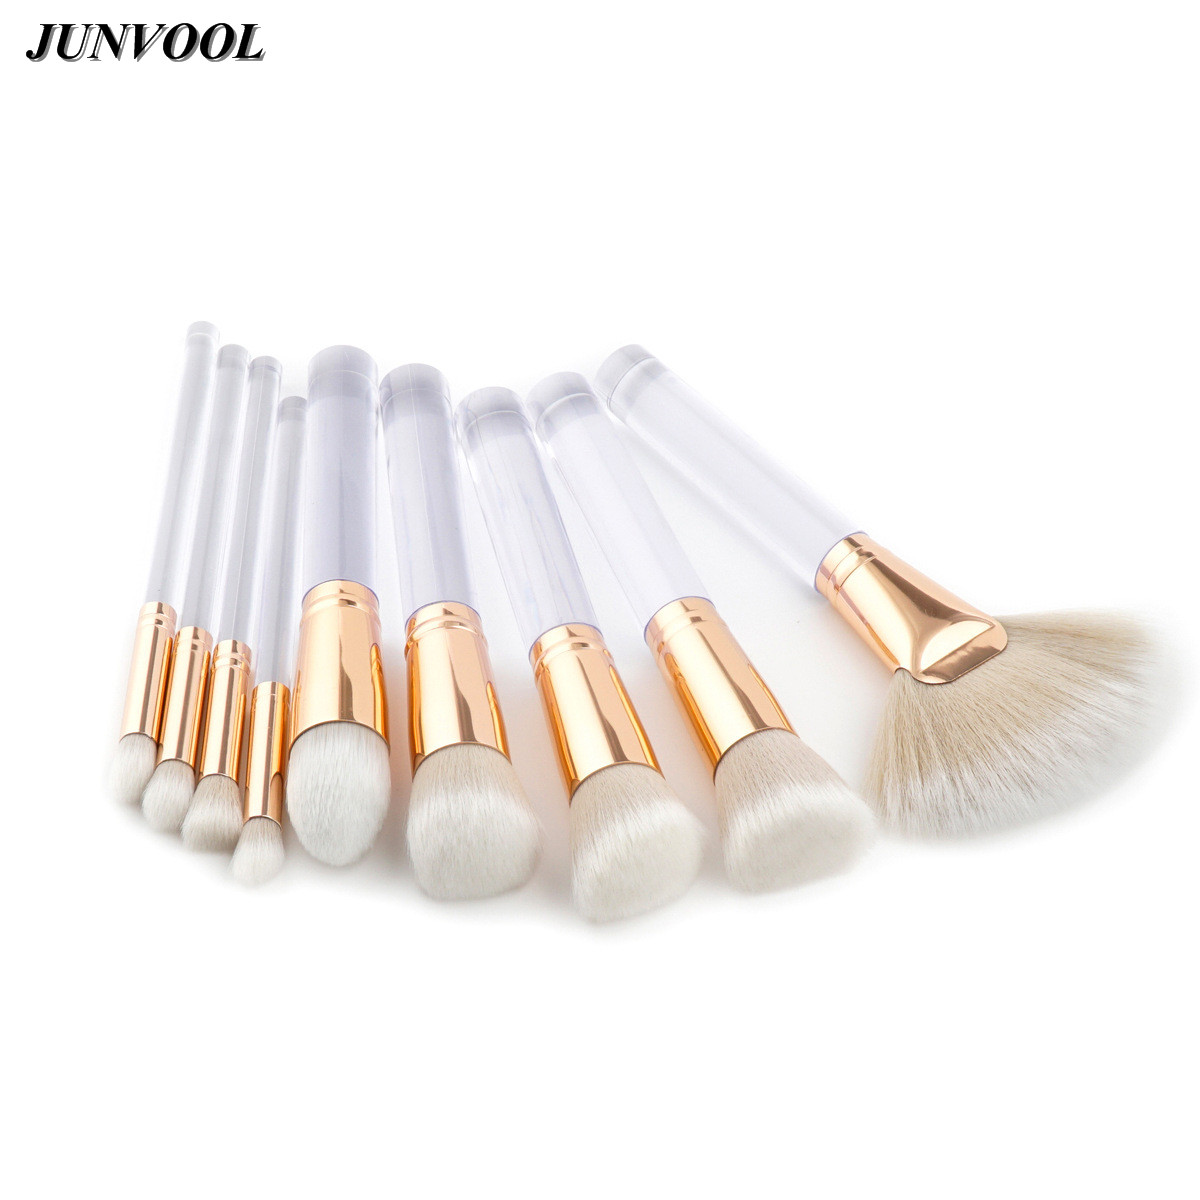 Transparent Handle 9Pcs/set Makeup Brushes Tool Kit Power Foundation Blush Eye Shadow Blending Fan Cosmetic Beauty Make Up Brush g073 professional makeup brush goat hair ebony handle make up eye shadow smudge brushes cosmetic tool eye shadow blending brush